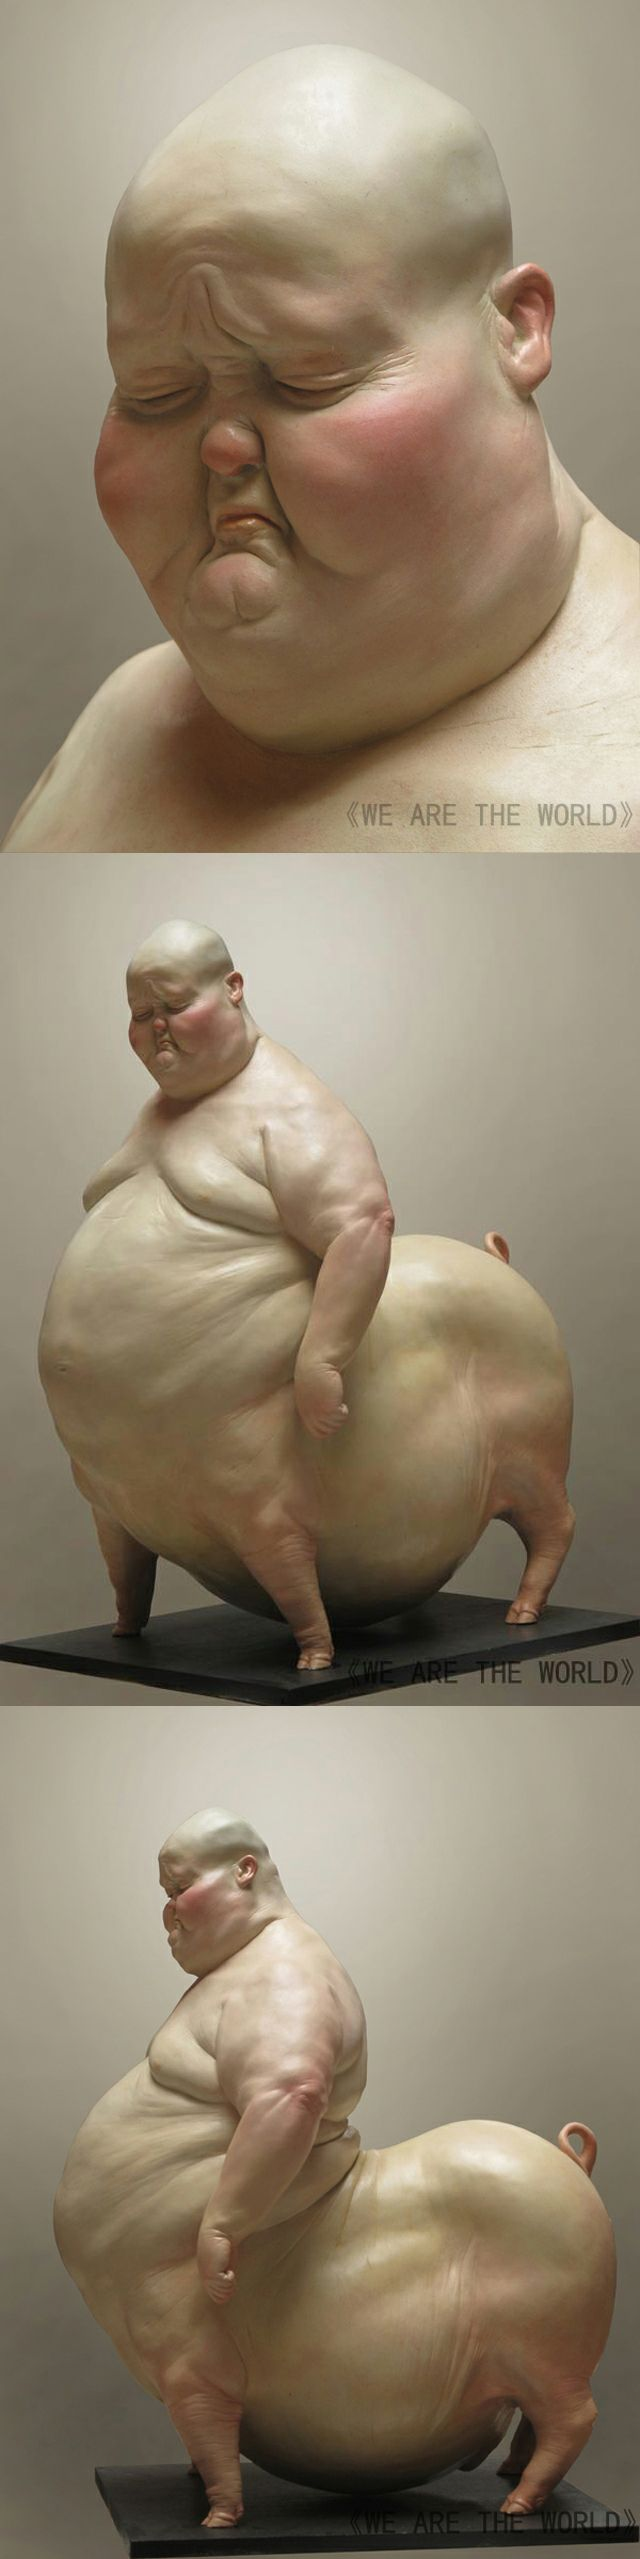 Liu Xue- sculpture. I have no idea how this sculpture is made but it is interesting